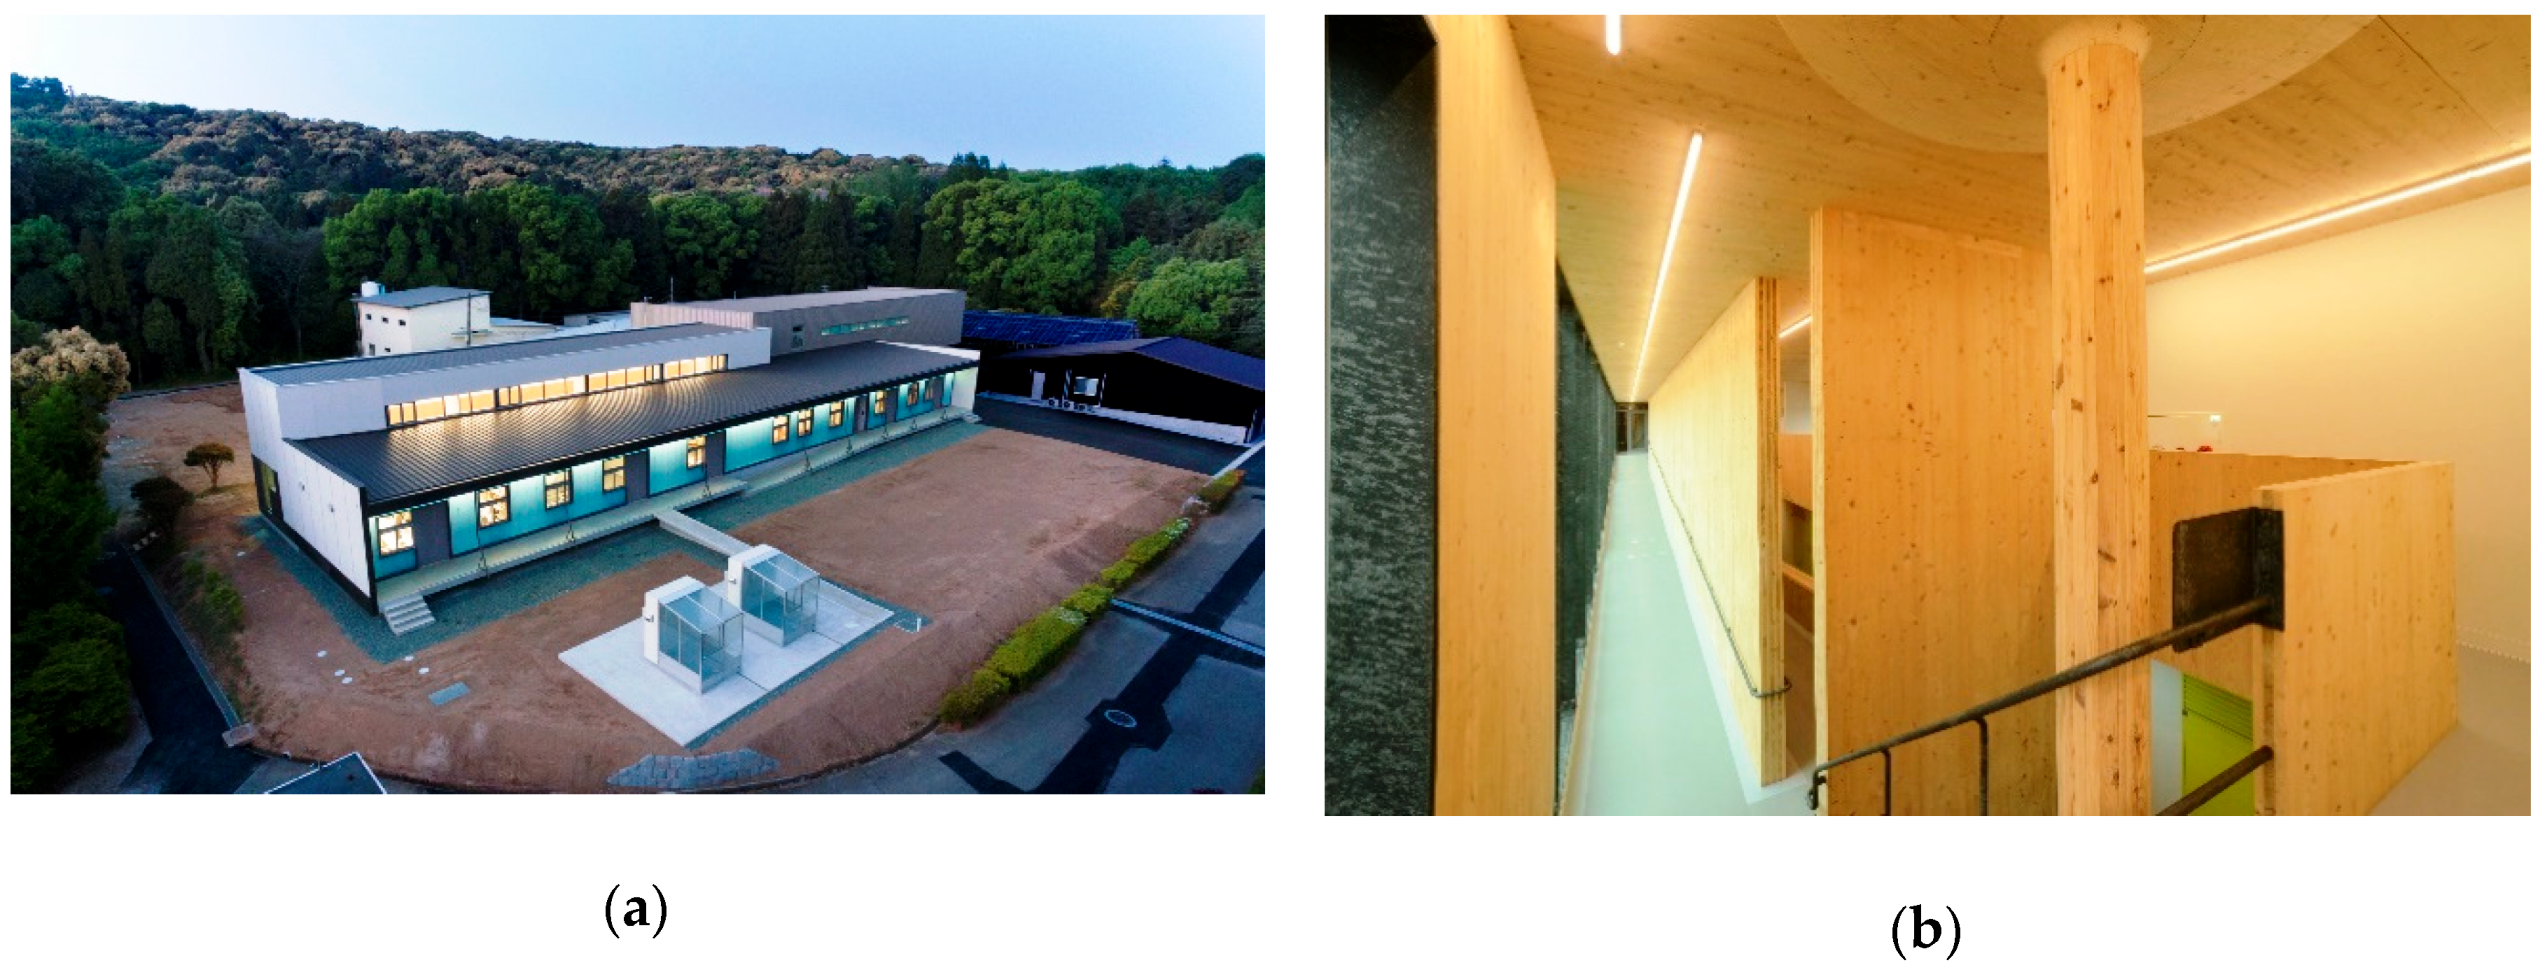 Sustainability Free Full Text Environmental Impacts Of Building Construction Using Cross Laminated Timber Panel Construction Method A Case Of The Research Building In Kyushu Japan Html